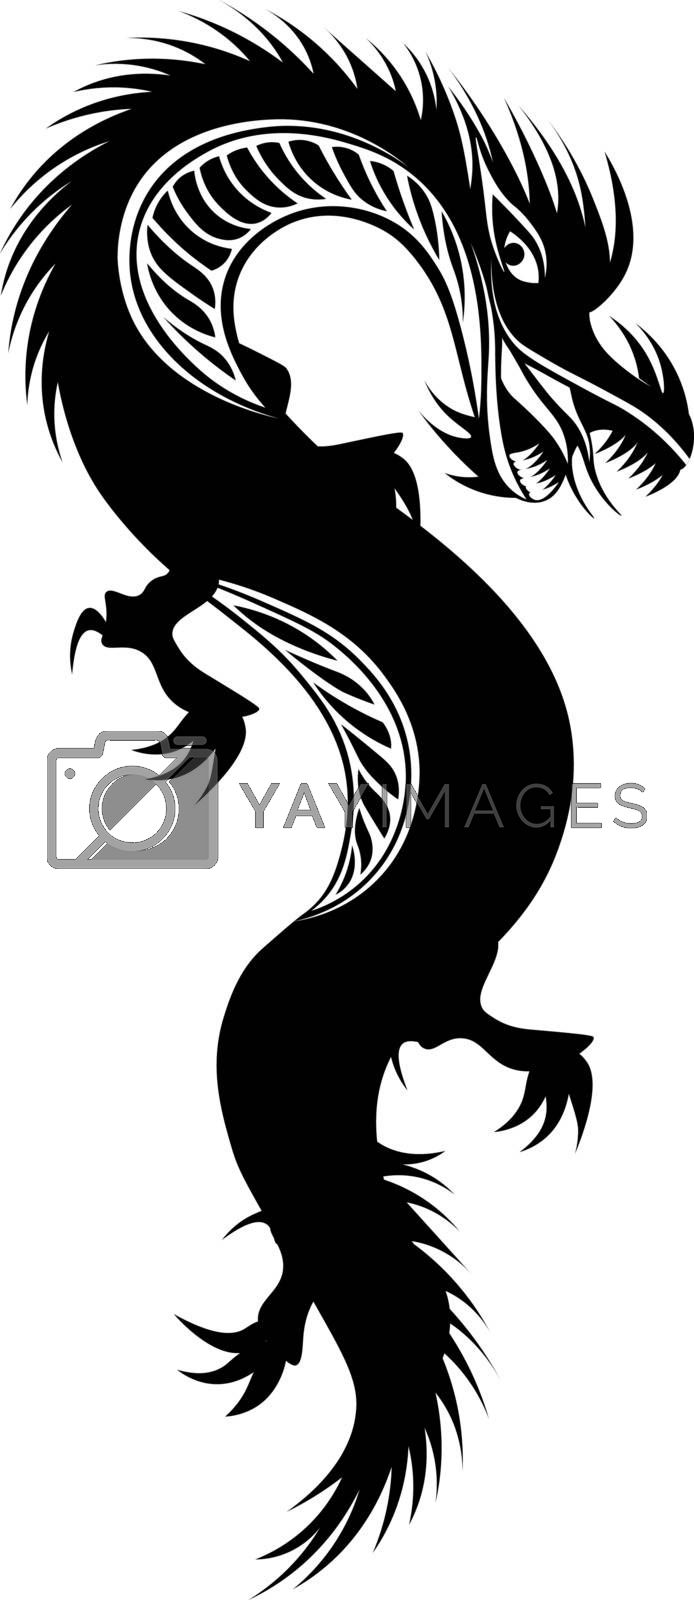 isolated black dragon for tattoo or print by paranoido